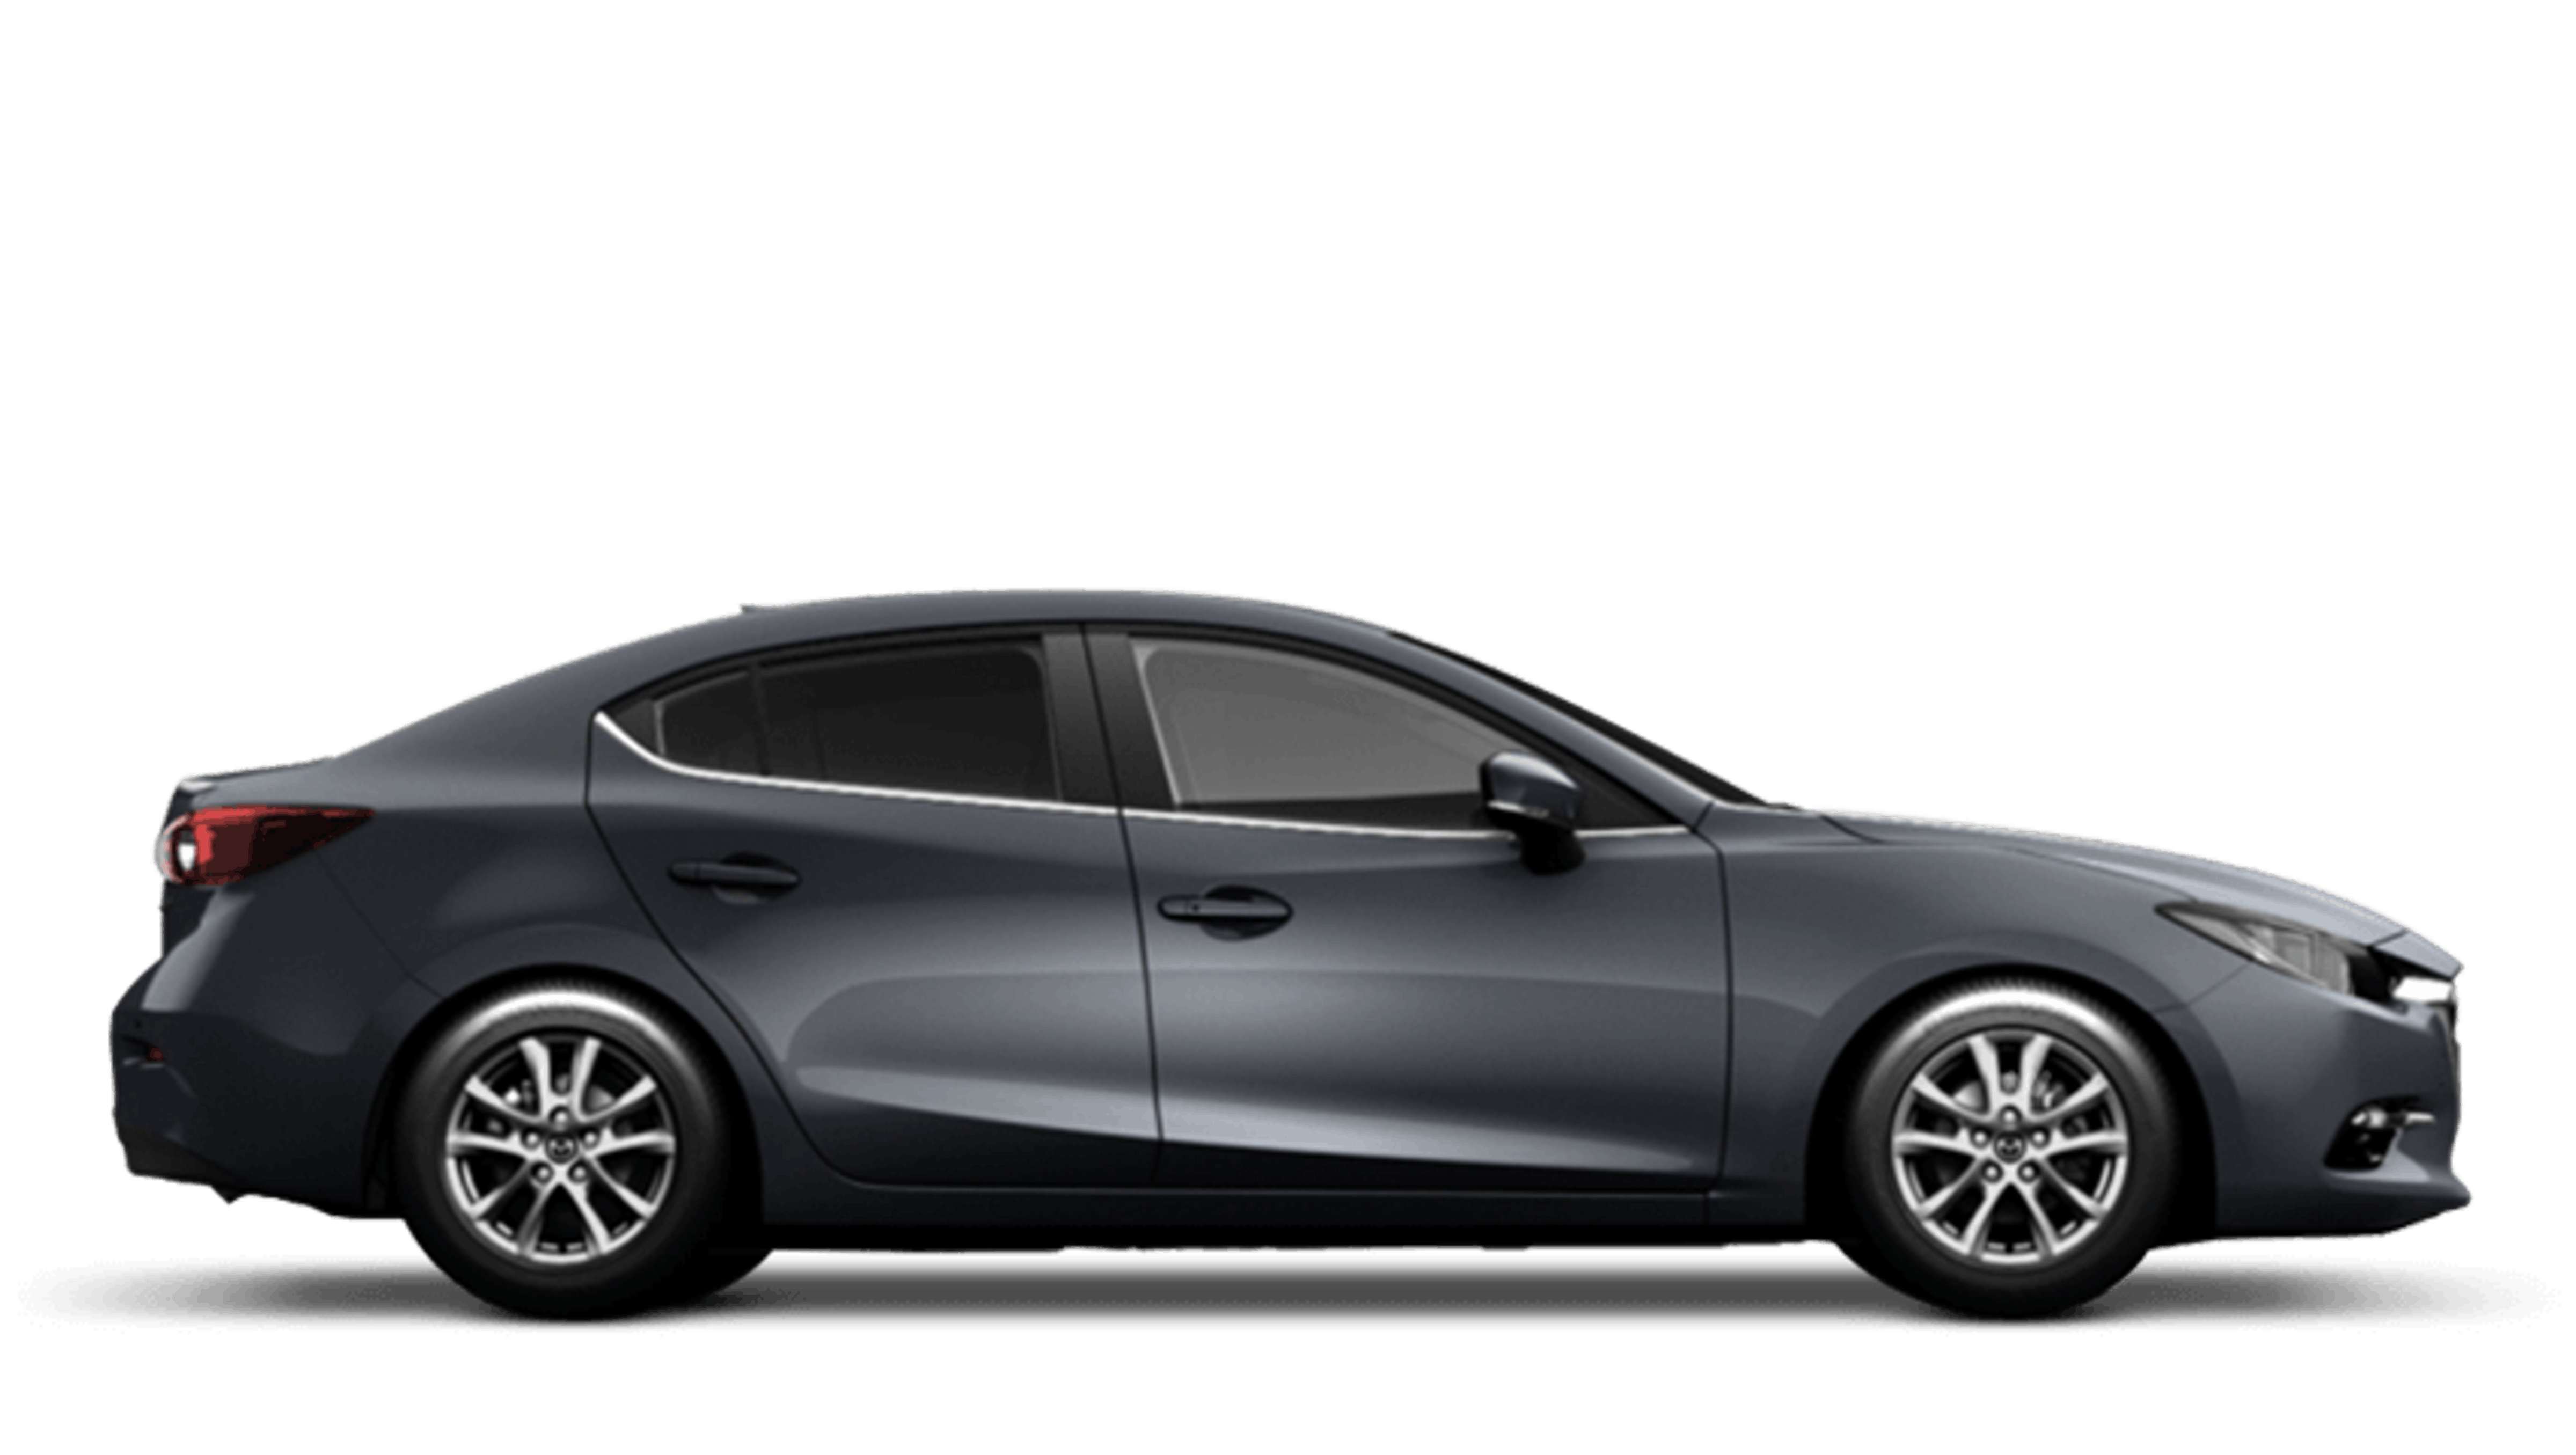 new mazda 3 cars for sale new mazda3 offers and deals. Black Bedroom Furniture Sets. Home Design Ideas